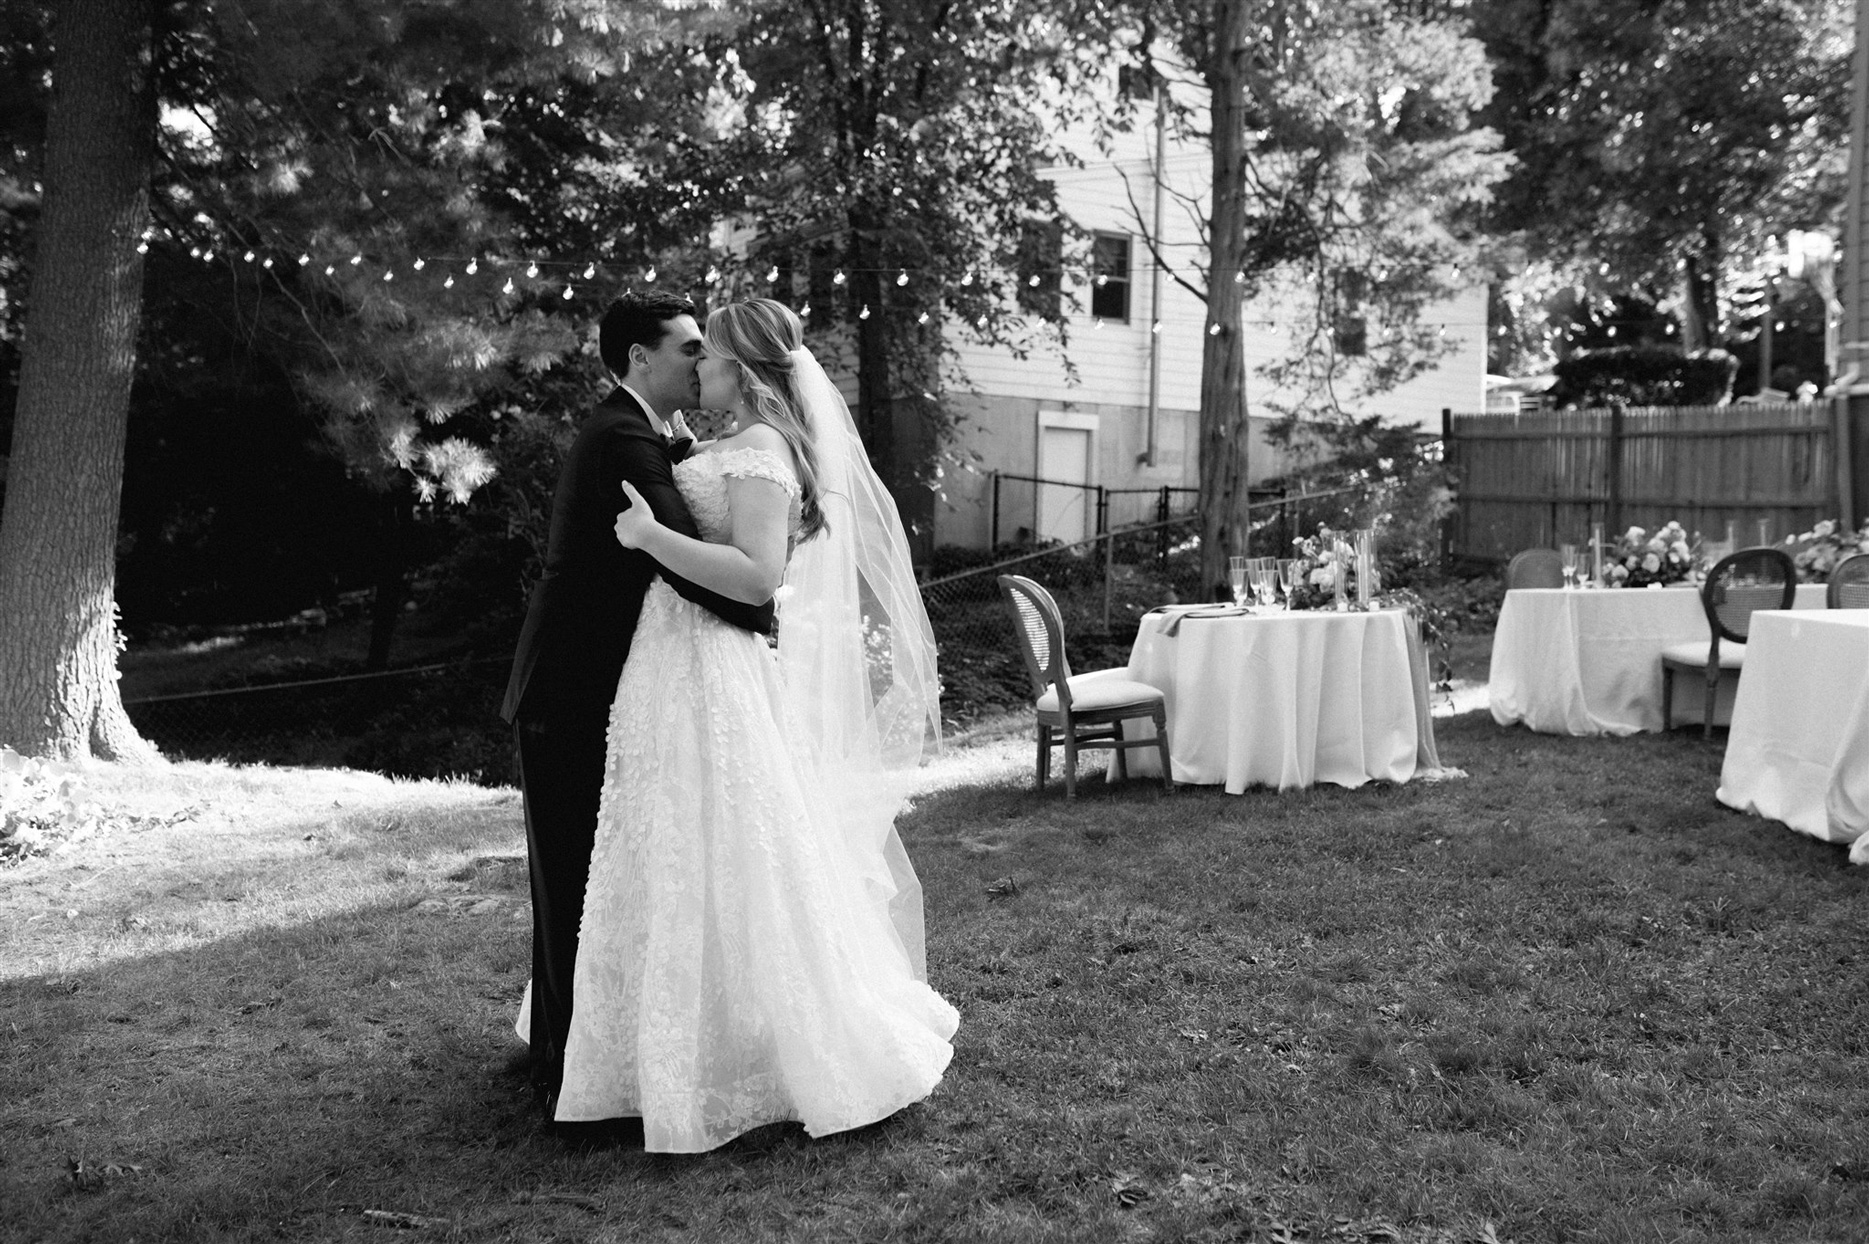 Bride and groom first look in backyard